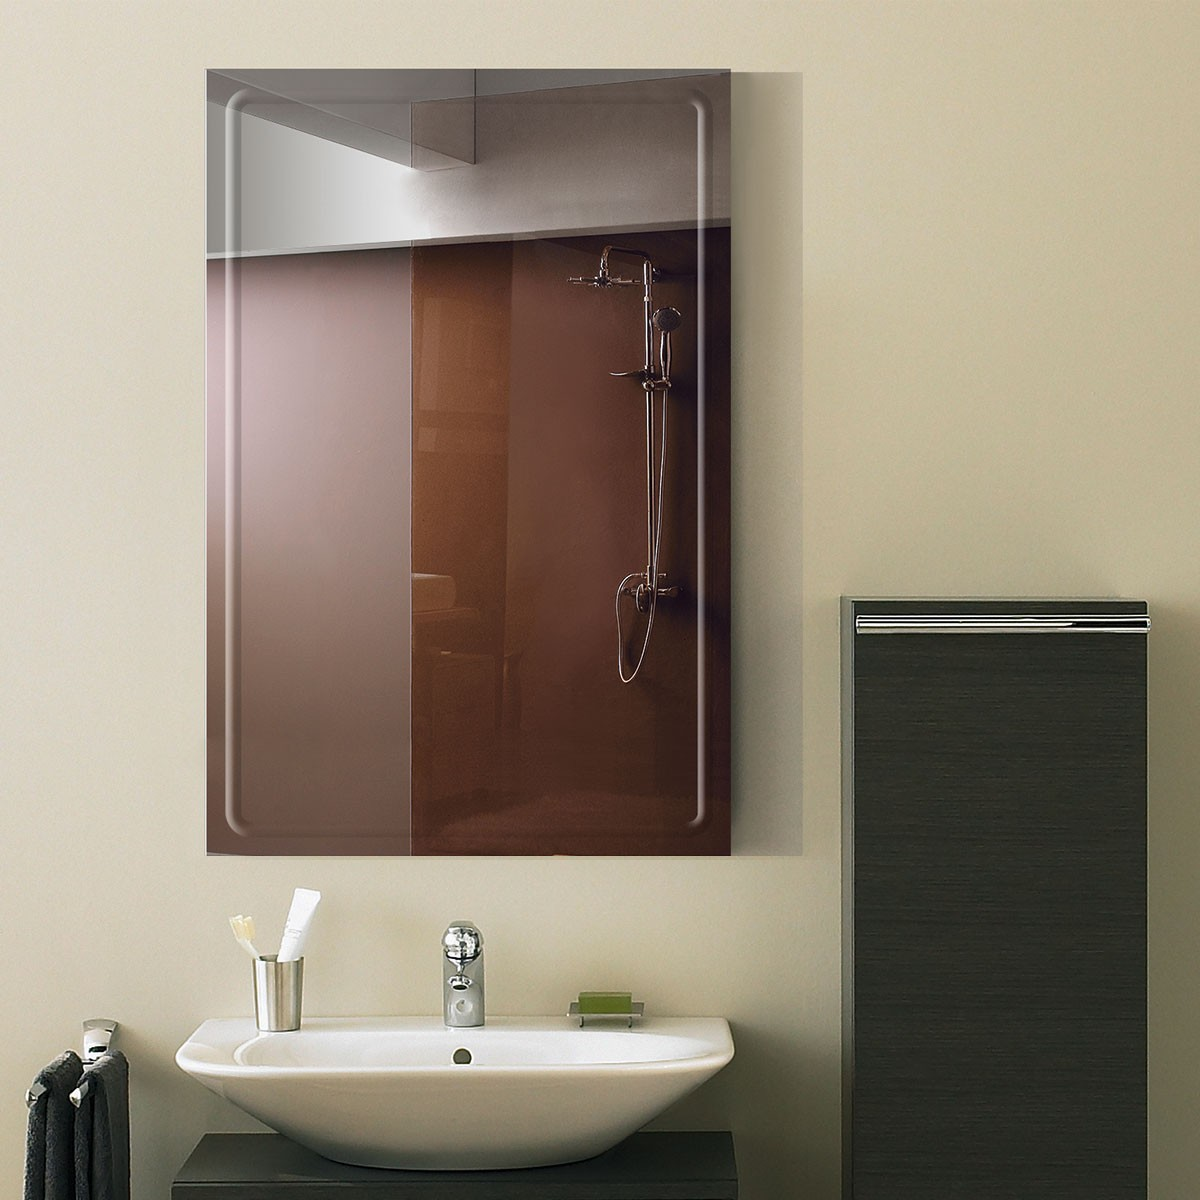 36 X 24 In Wall Mounted Rectangle Bathroom Mirror Dk Od